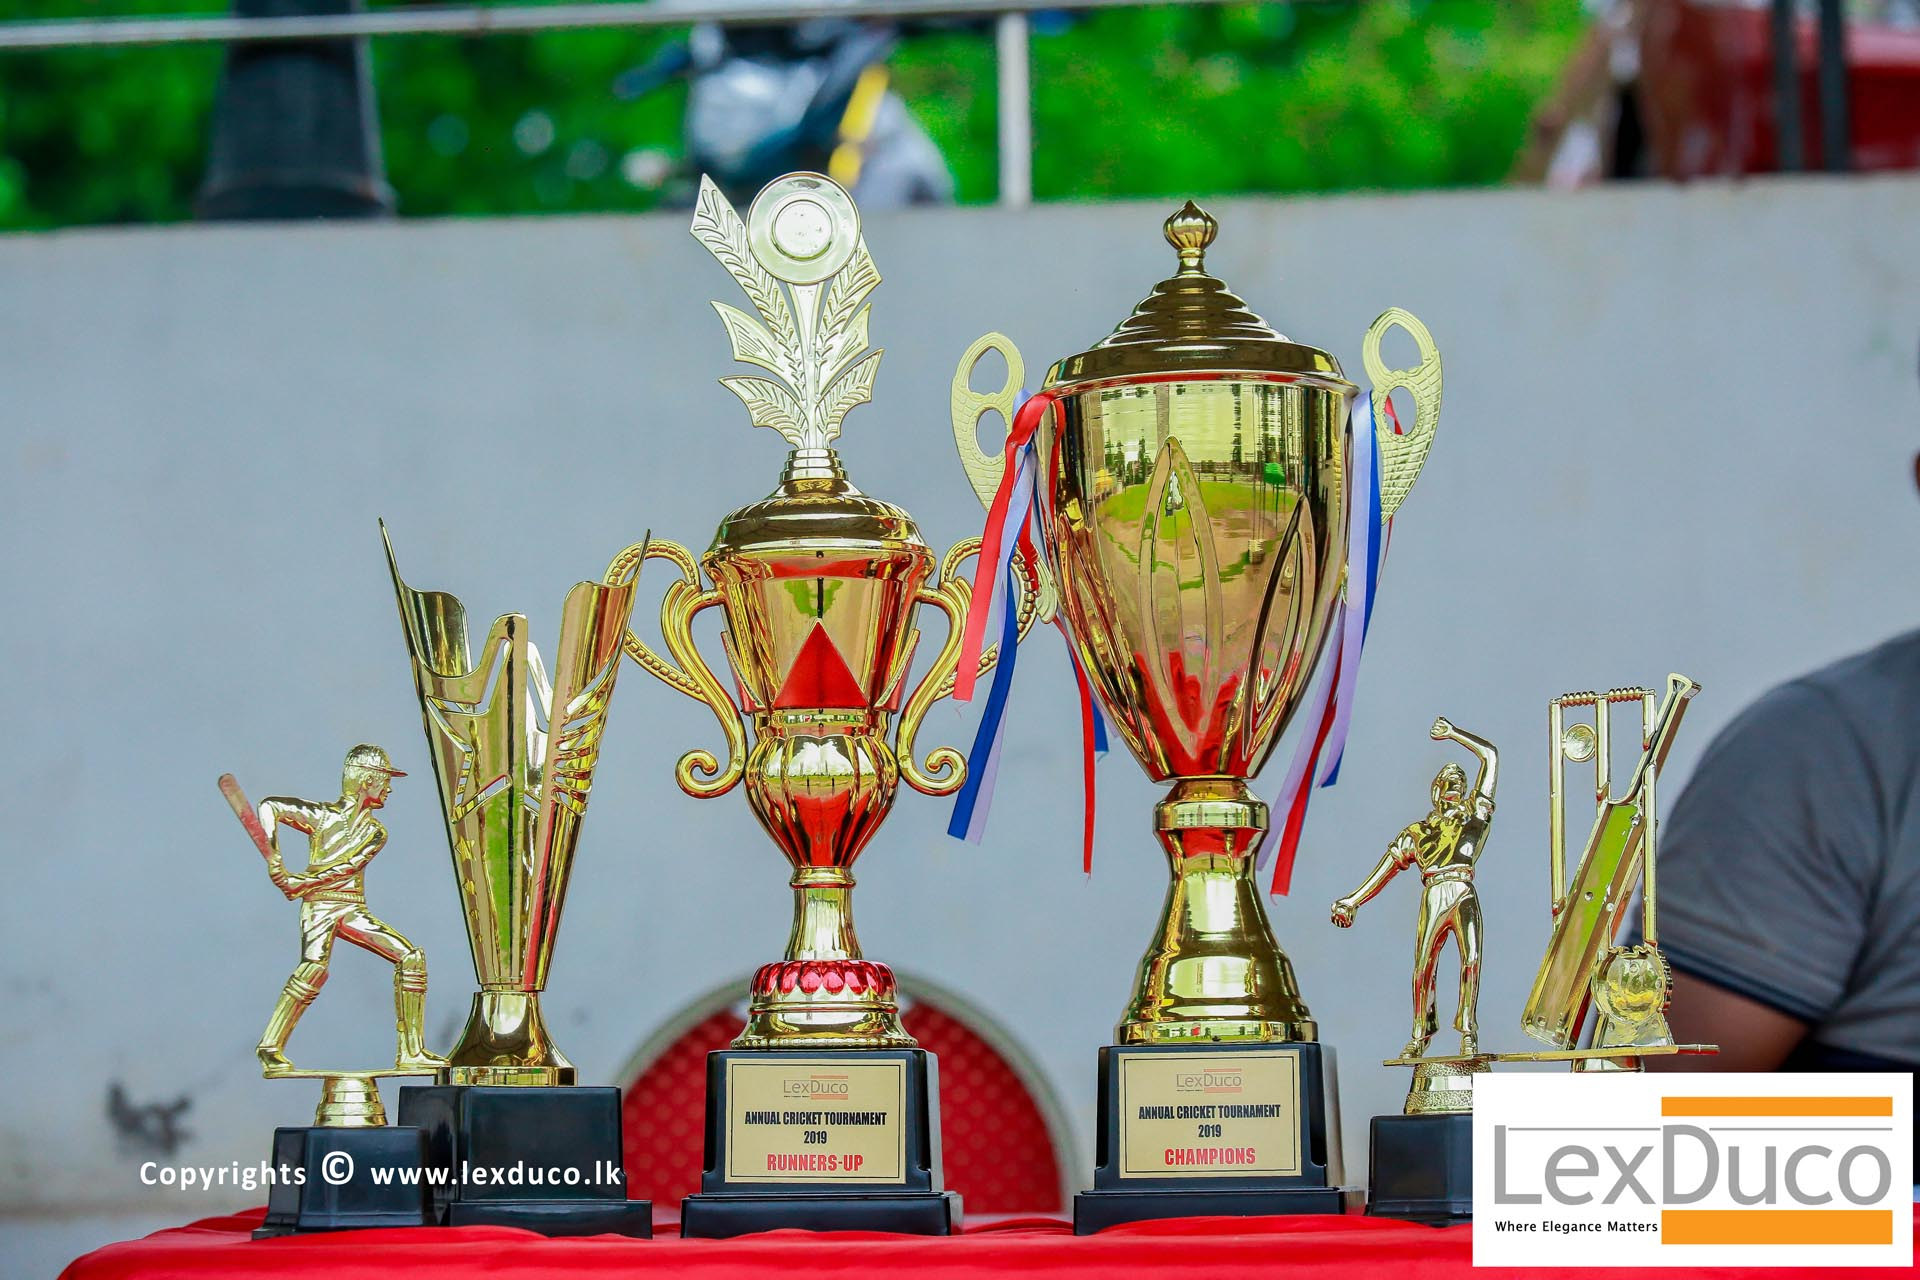 Lex Duco Annual Cricket Tournament - 2019 | Lex Duco